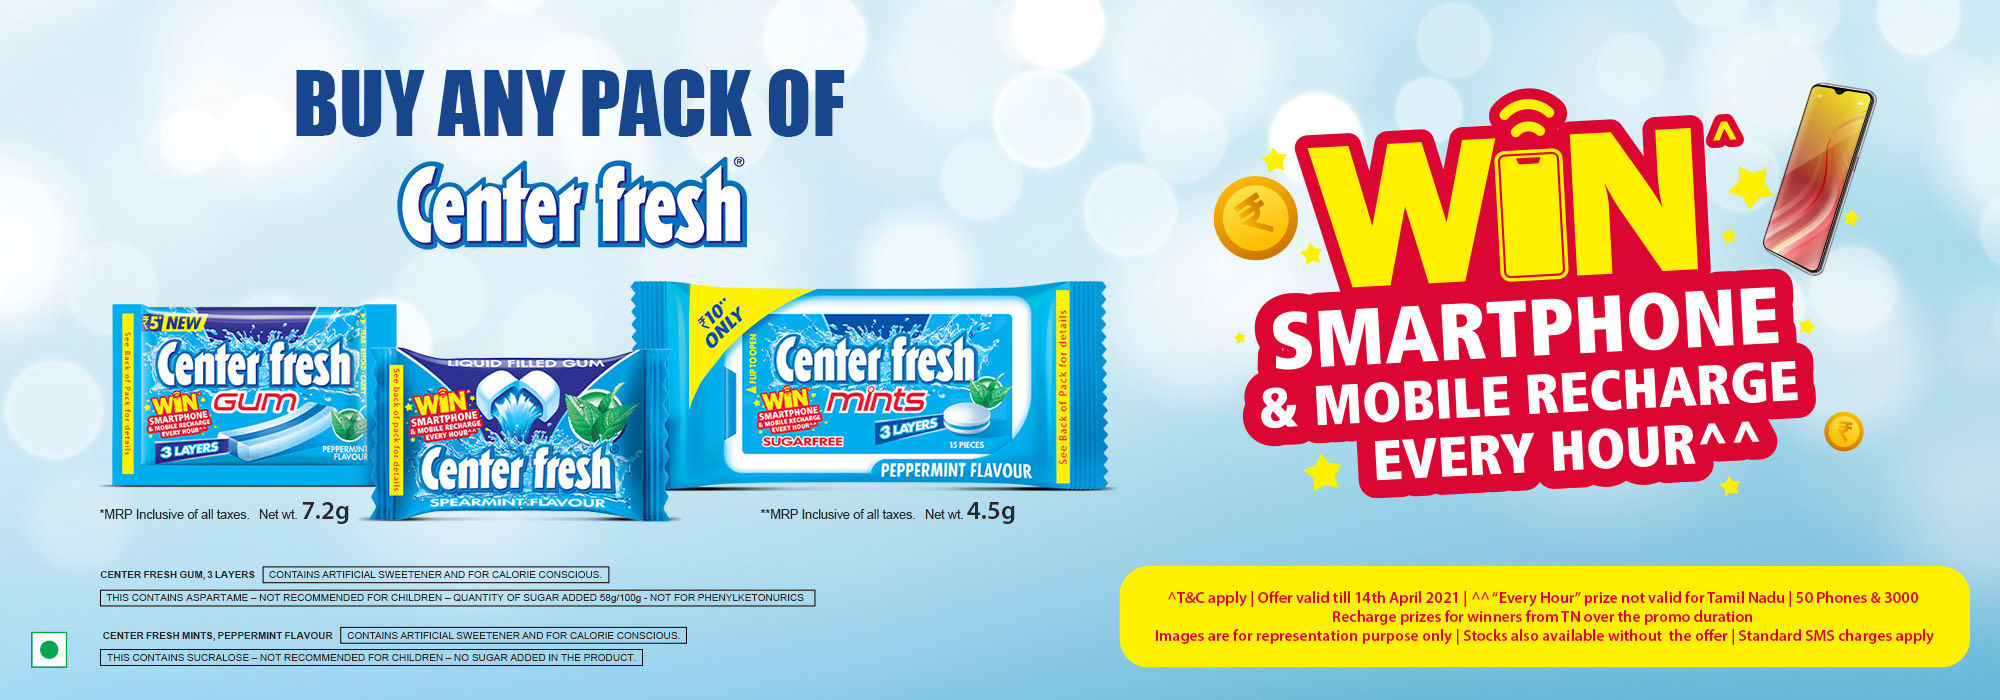 Center Fresh Lucky Draw Contest is offering a smartphone and mobile recharges every hour